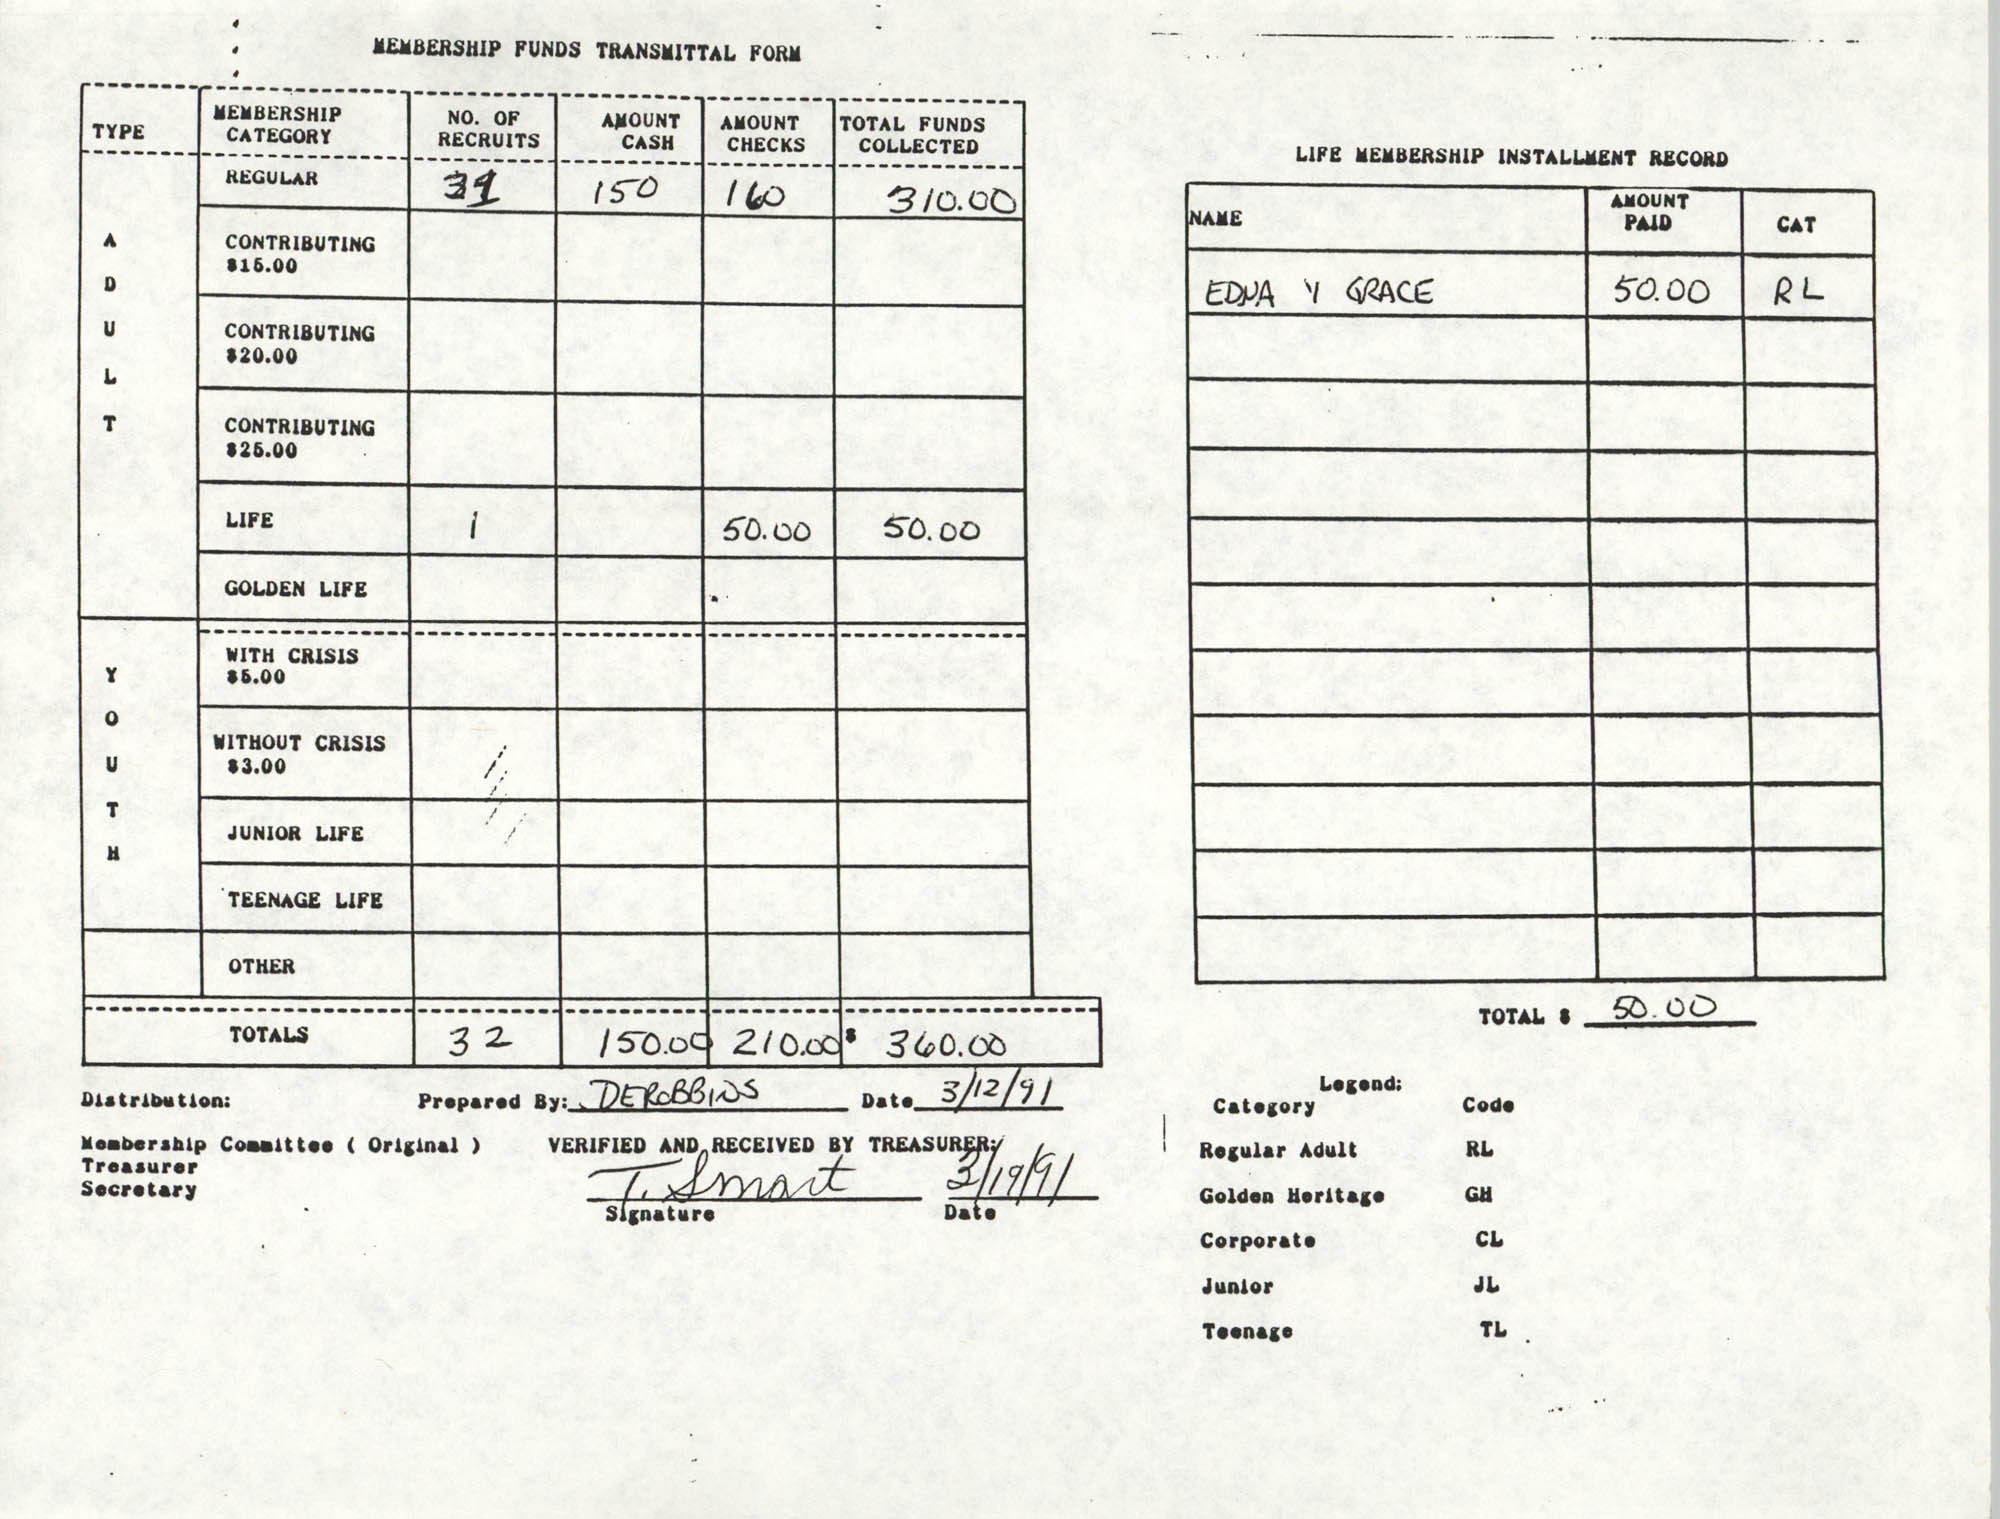 Charleston Branch of the NAACP Funds Transmittal Forms, March 1991, Page 7